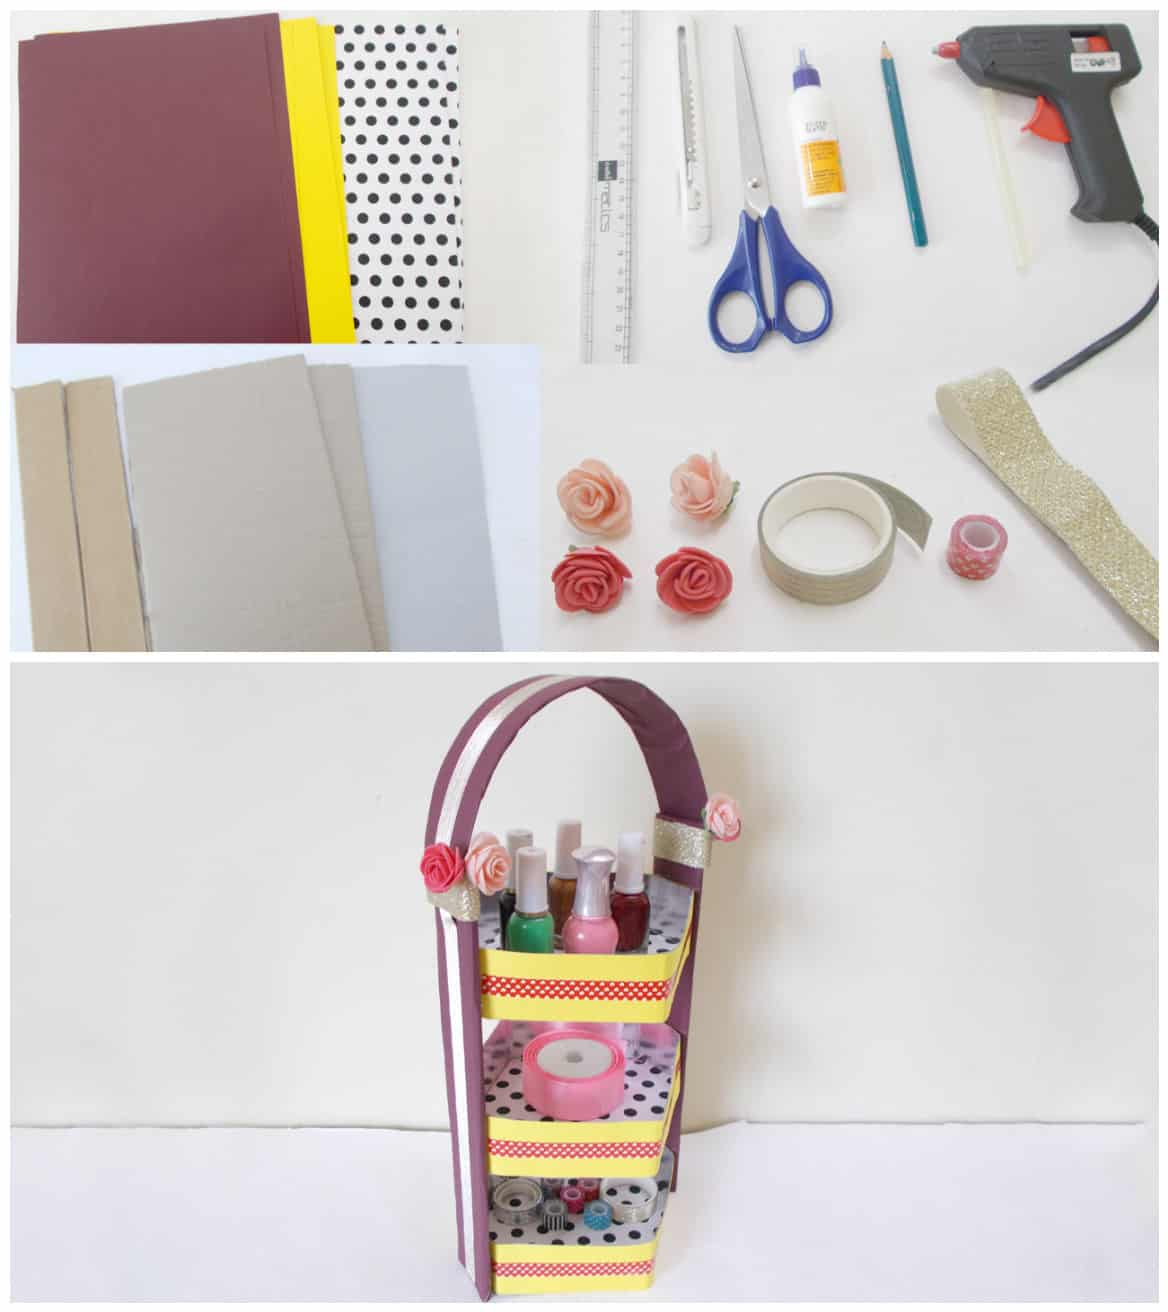 Diy Recycled Crafts How To Make Diy Cardboard Organizer